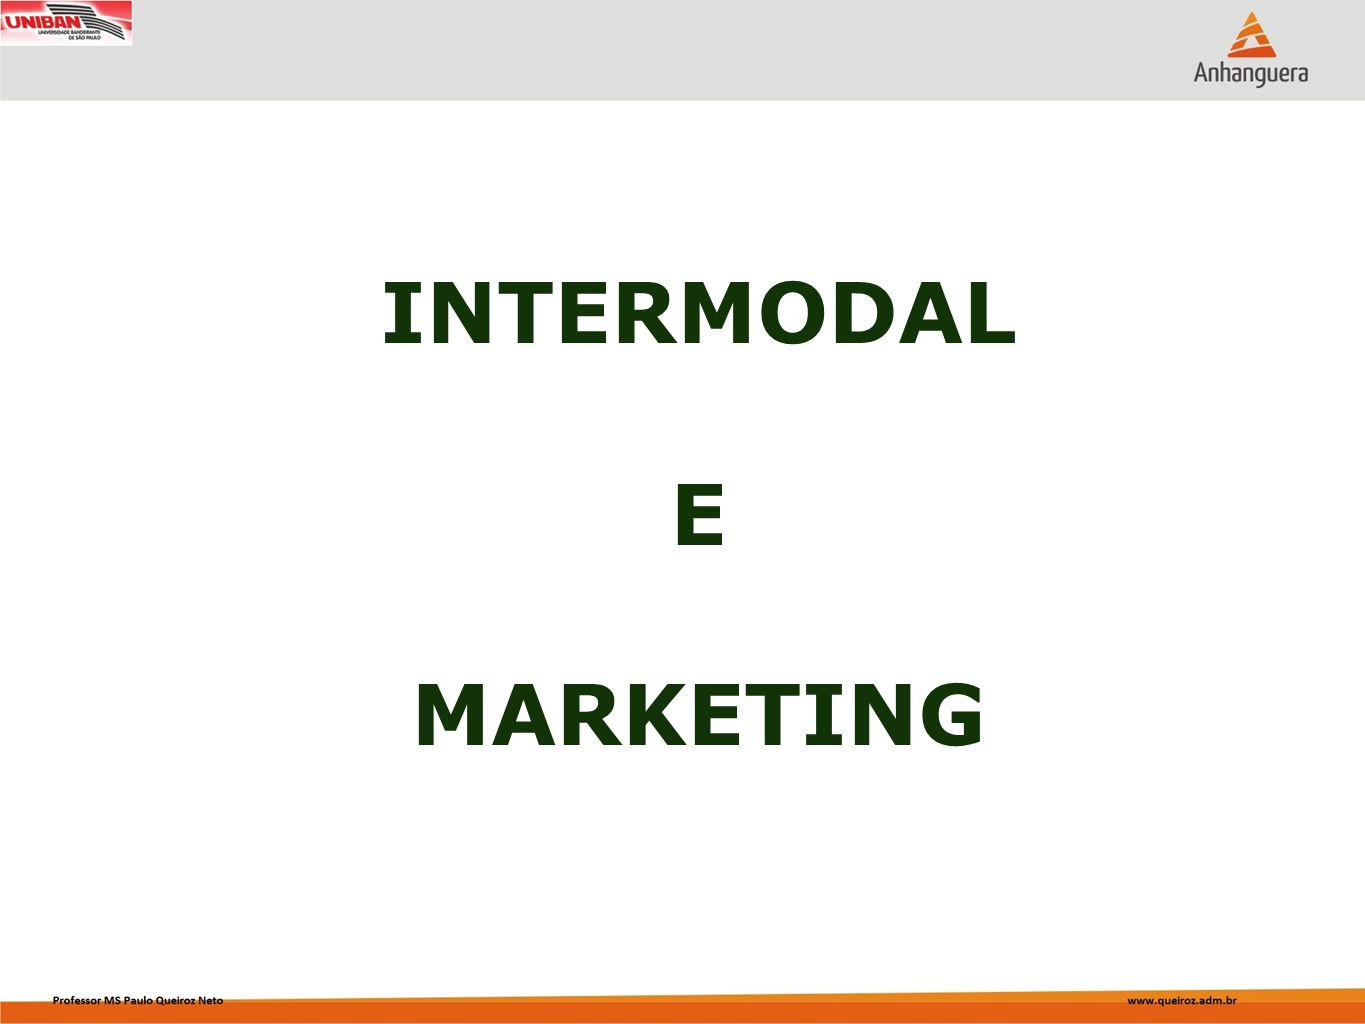 INTERMODAL E MARKETING